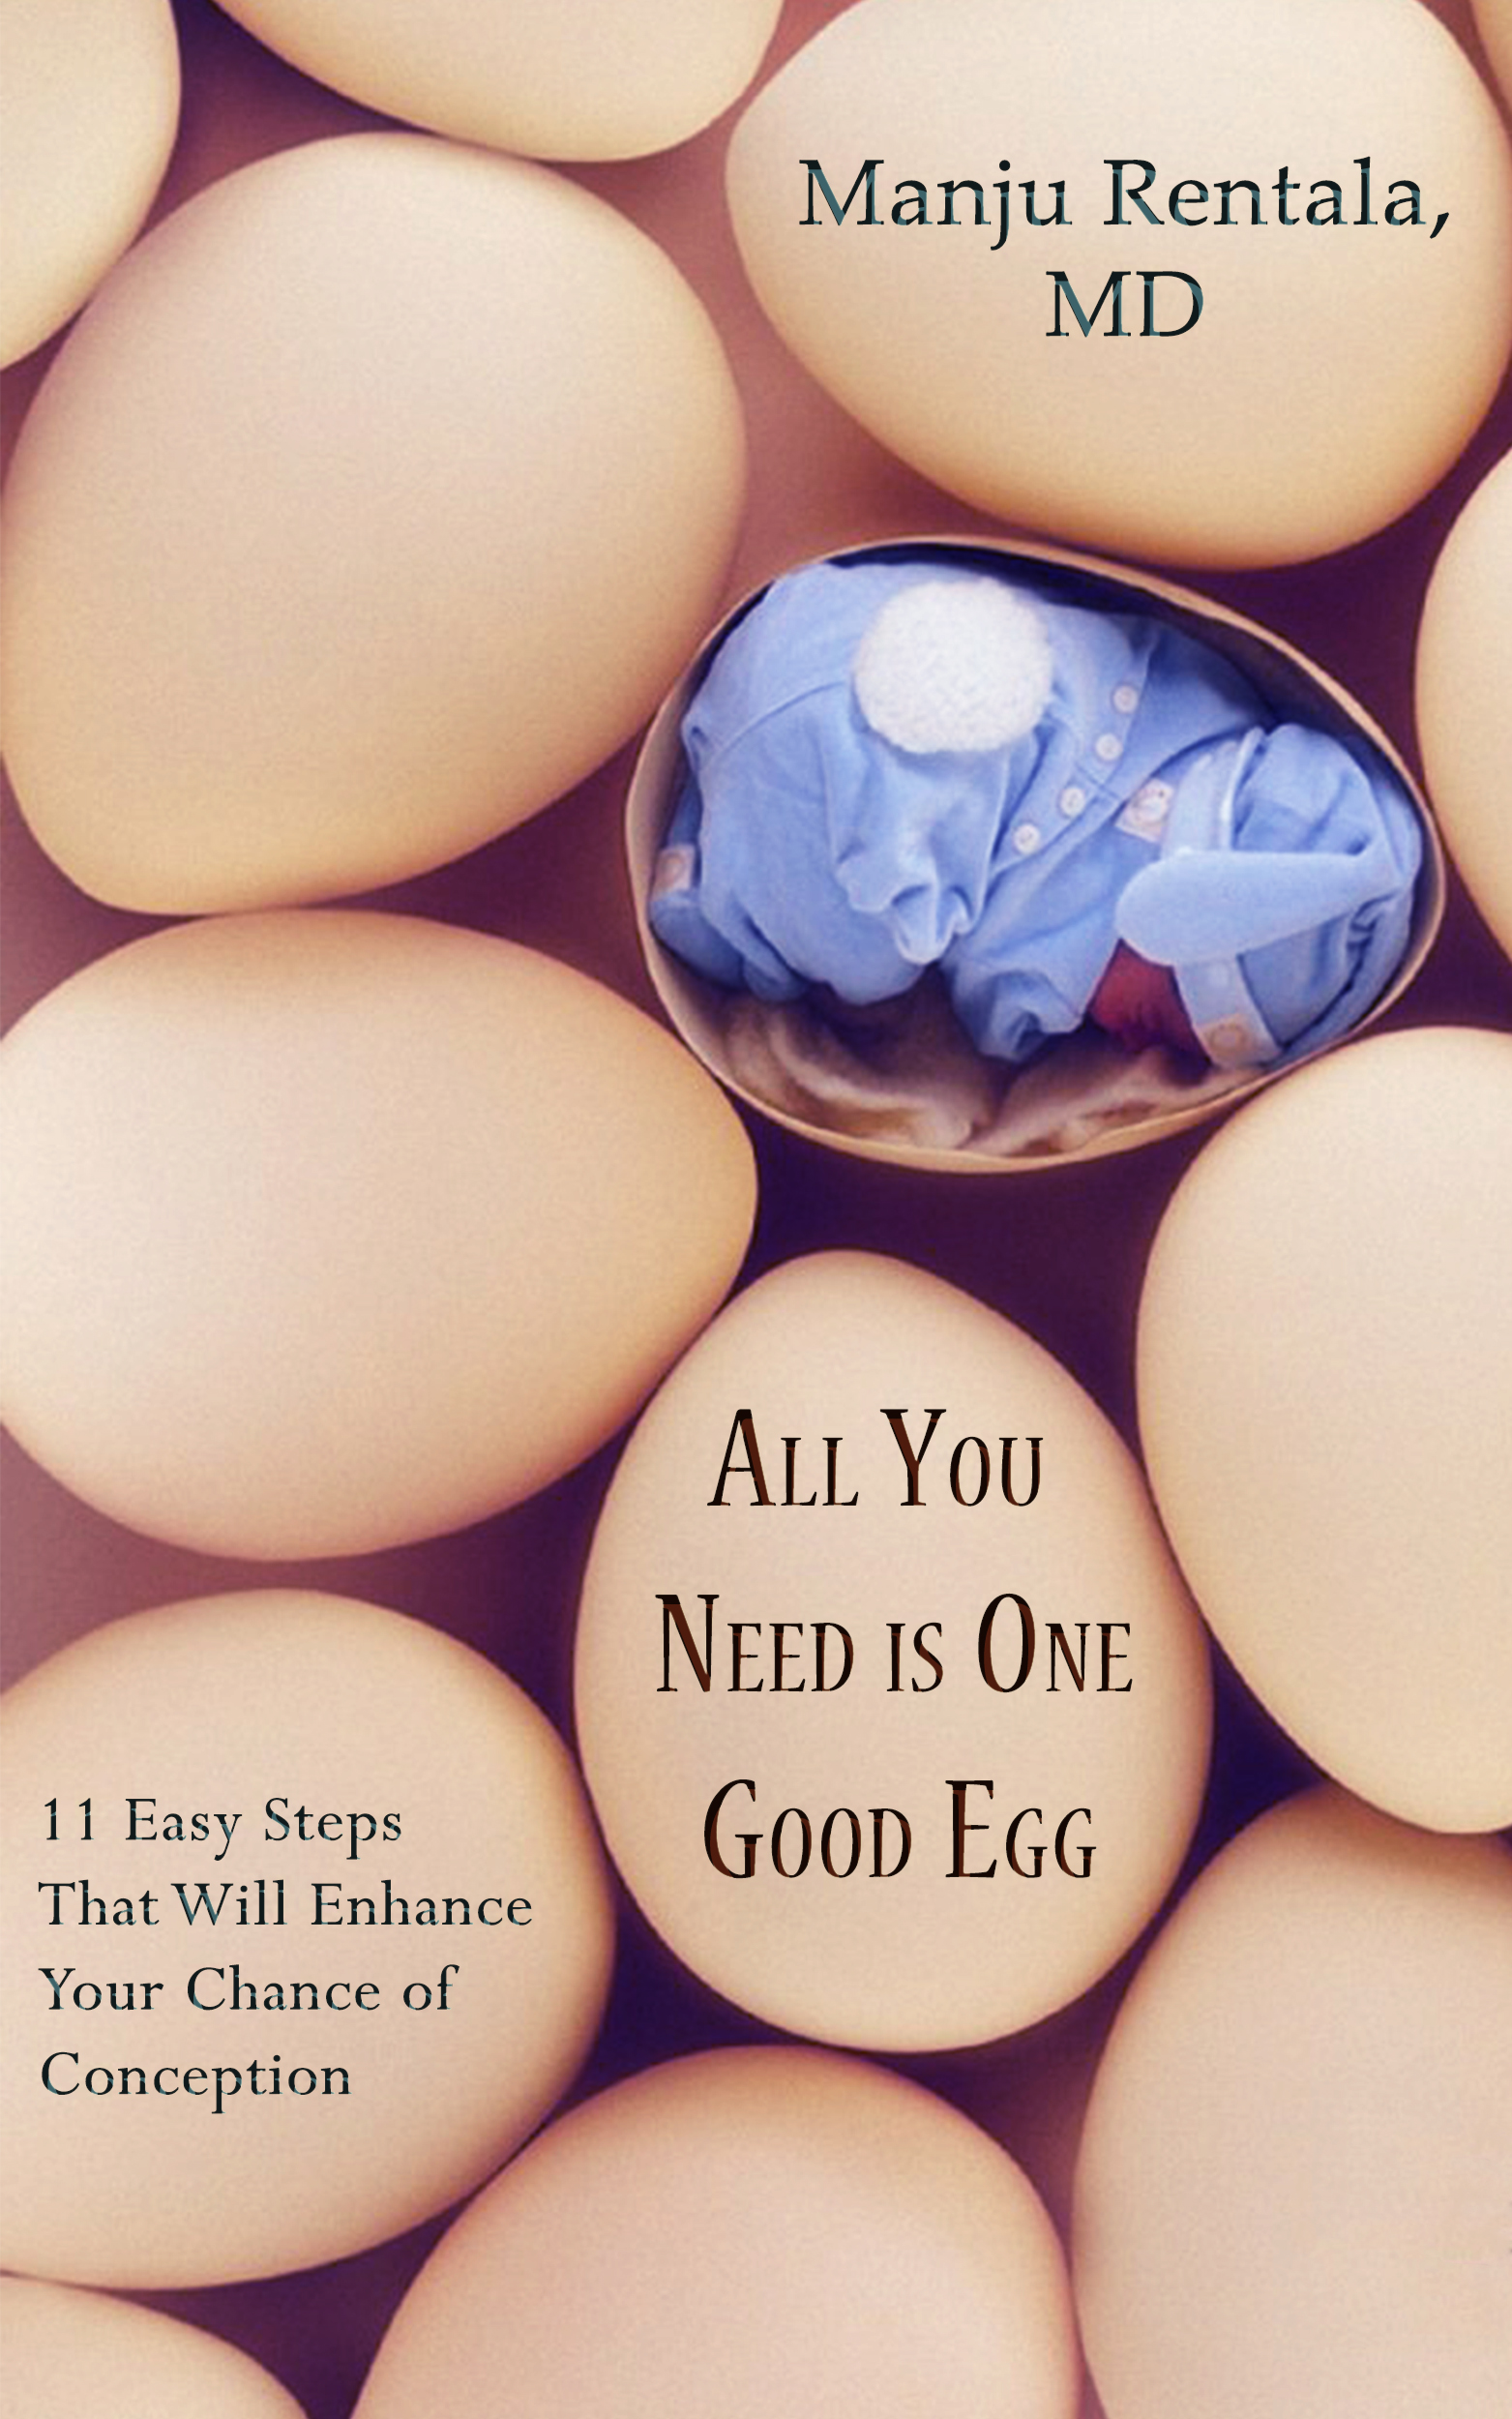 All You Need is One Good Egg